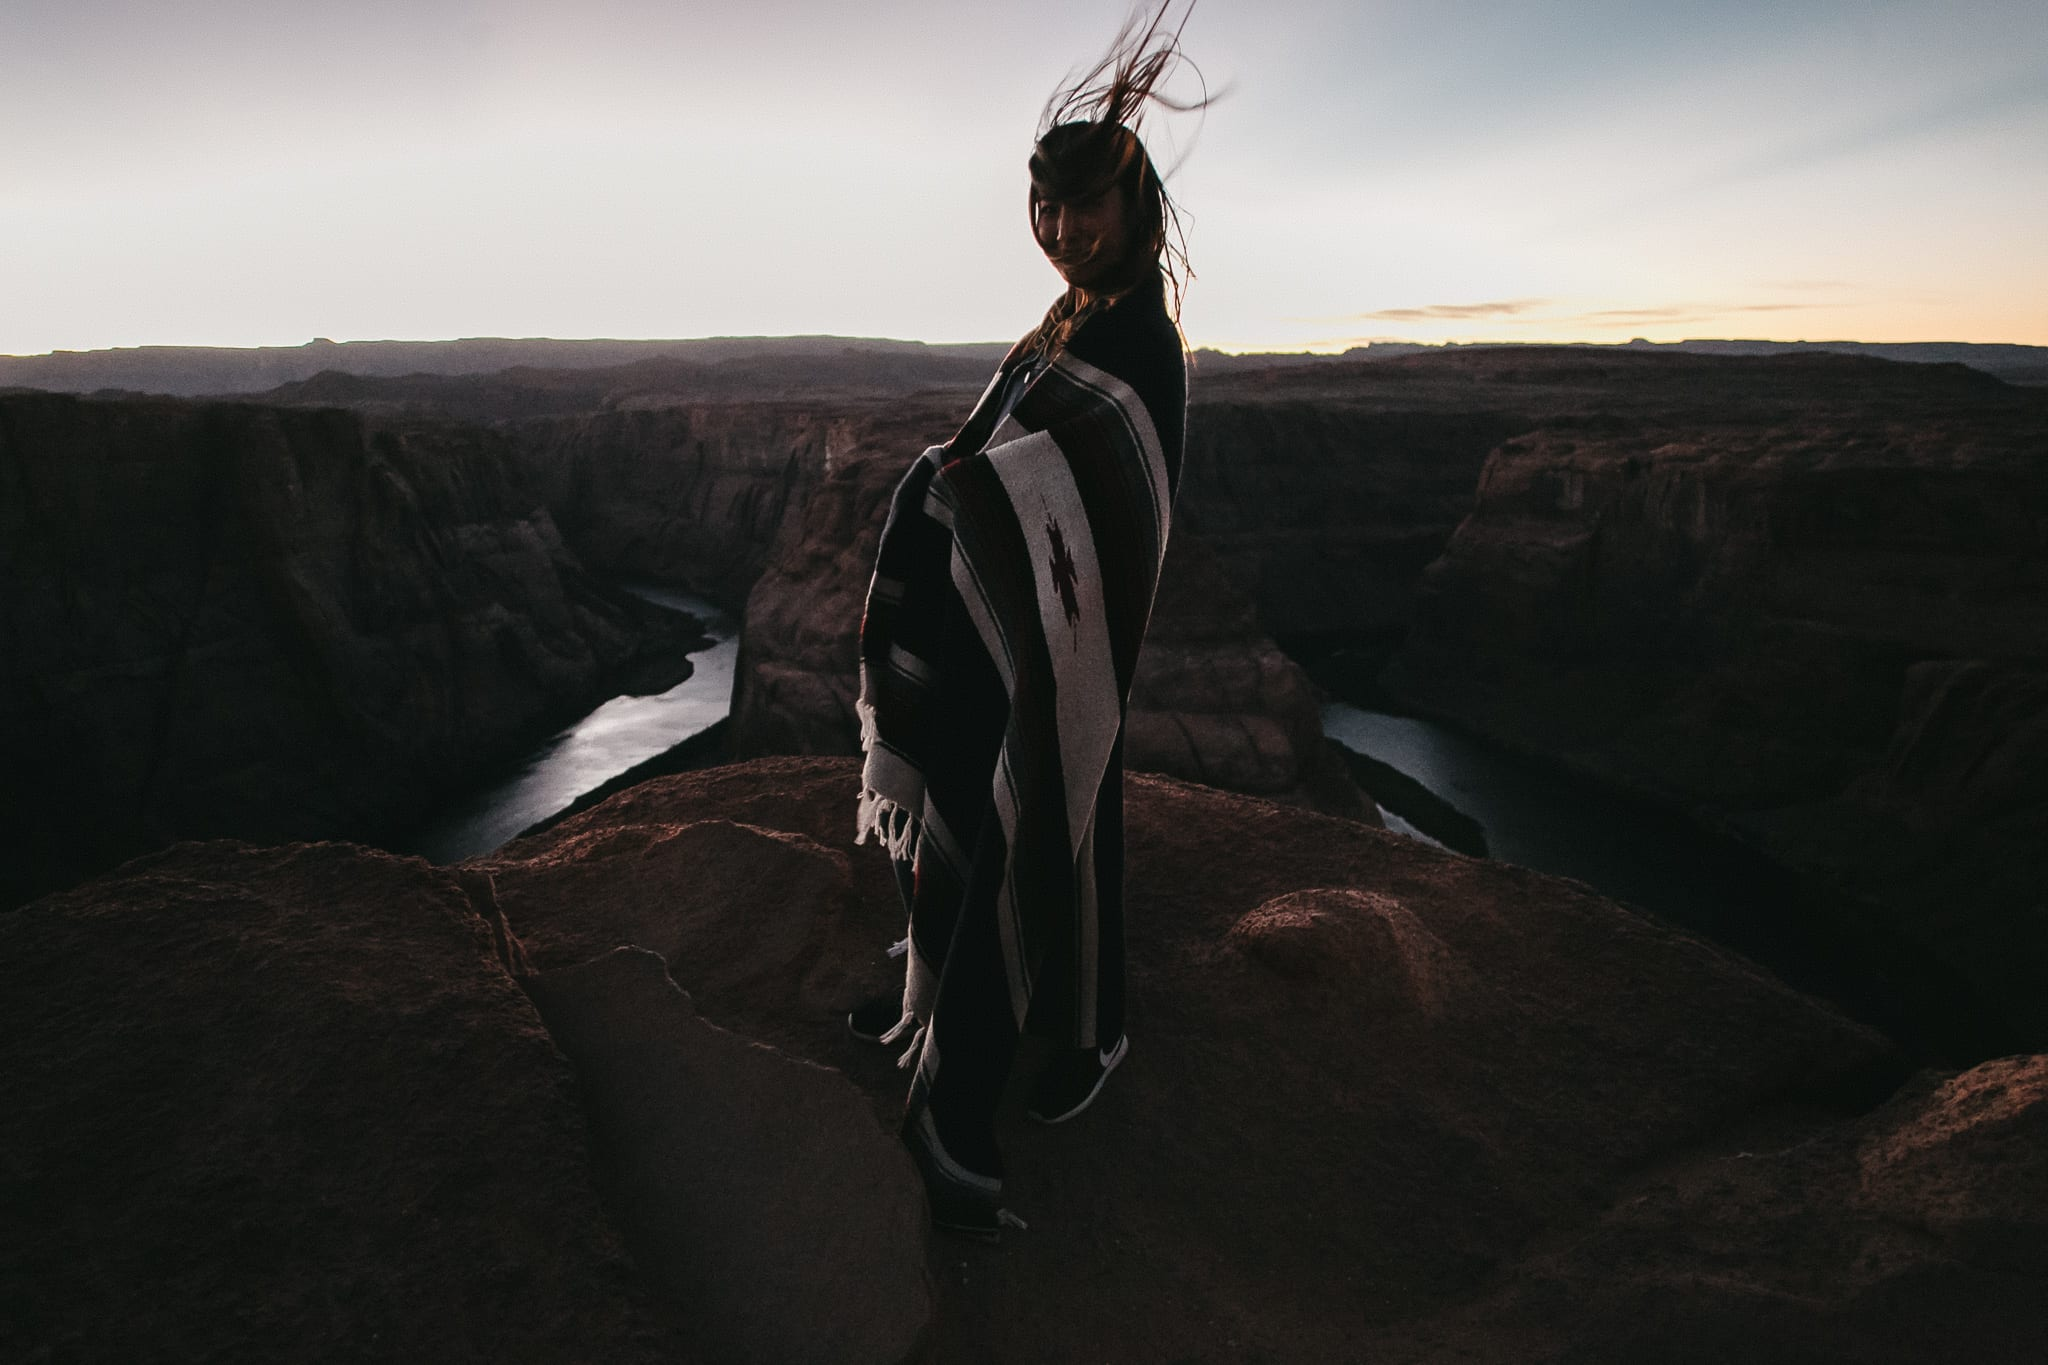 jc2-horseshoe-bend-antelope-cannyon-arizona-lifestyle-portrait-photographer-3